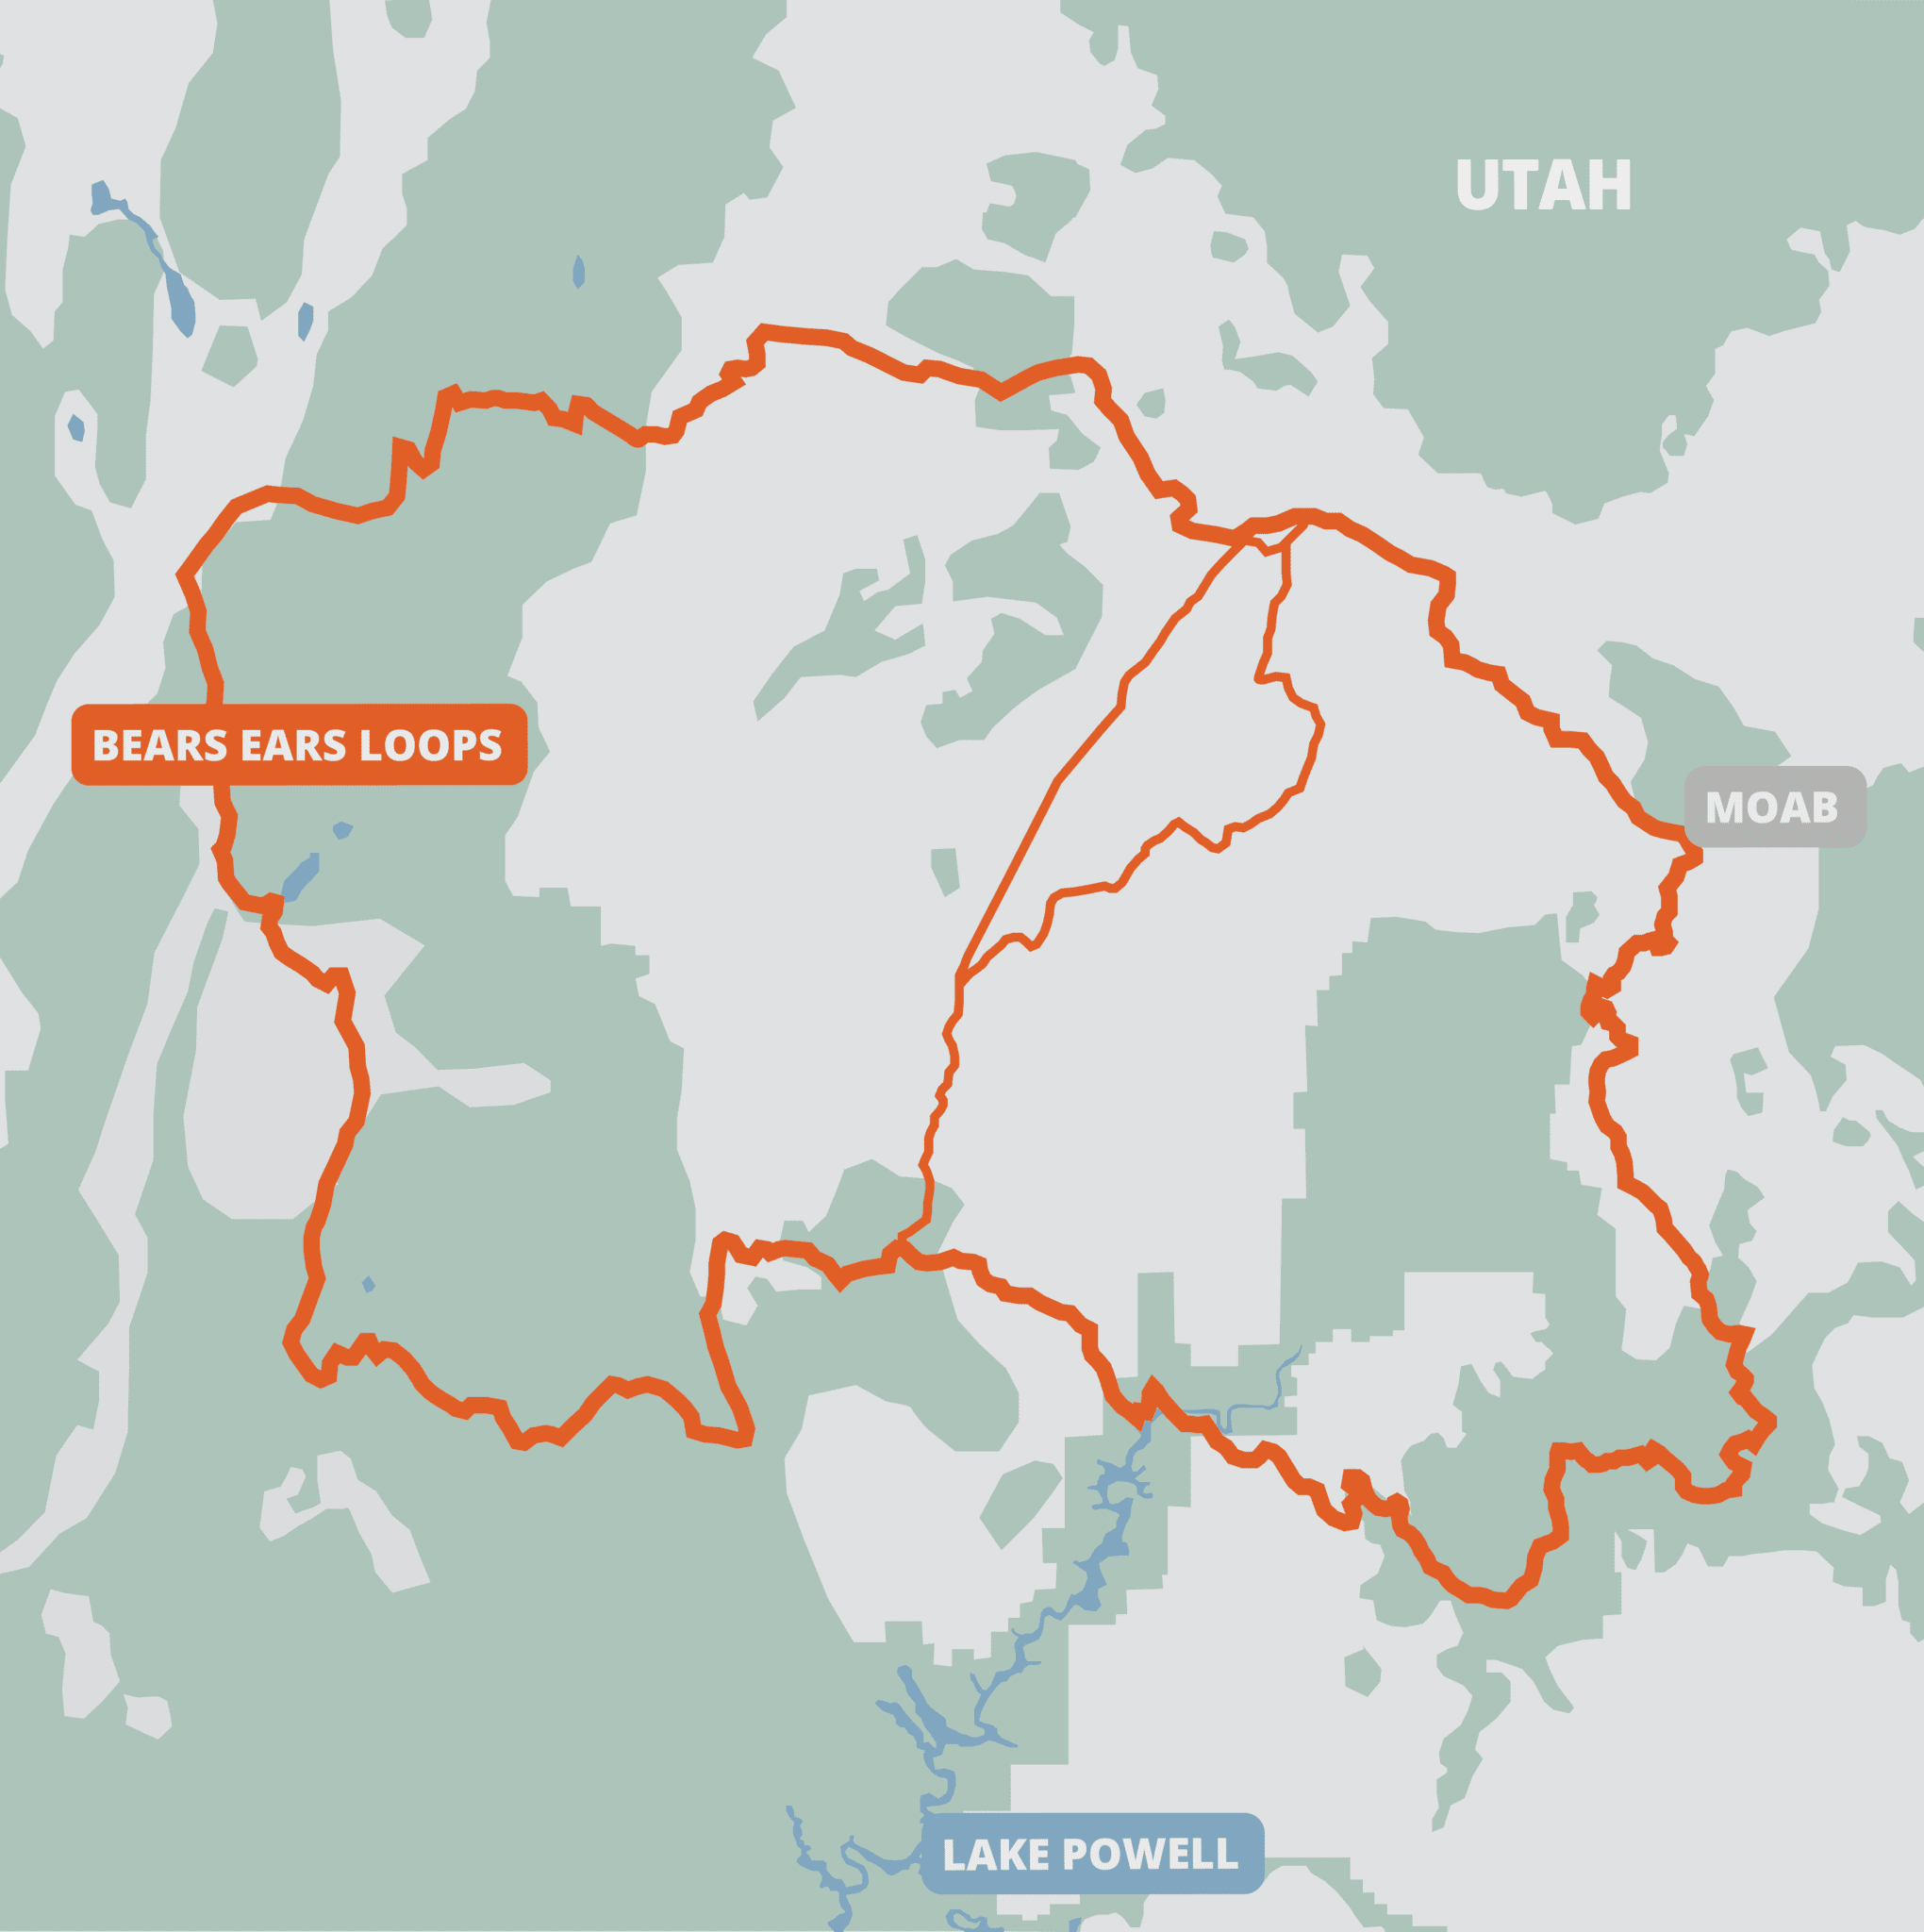 Illustrated map of the bears ears loops